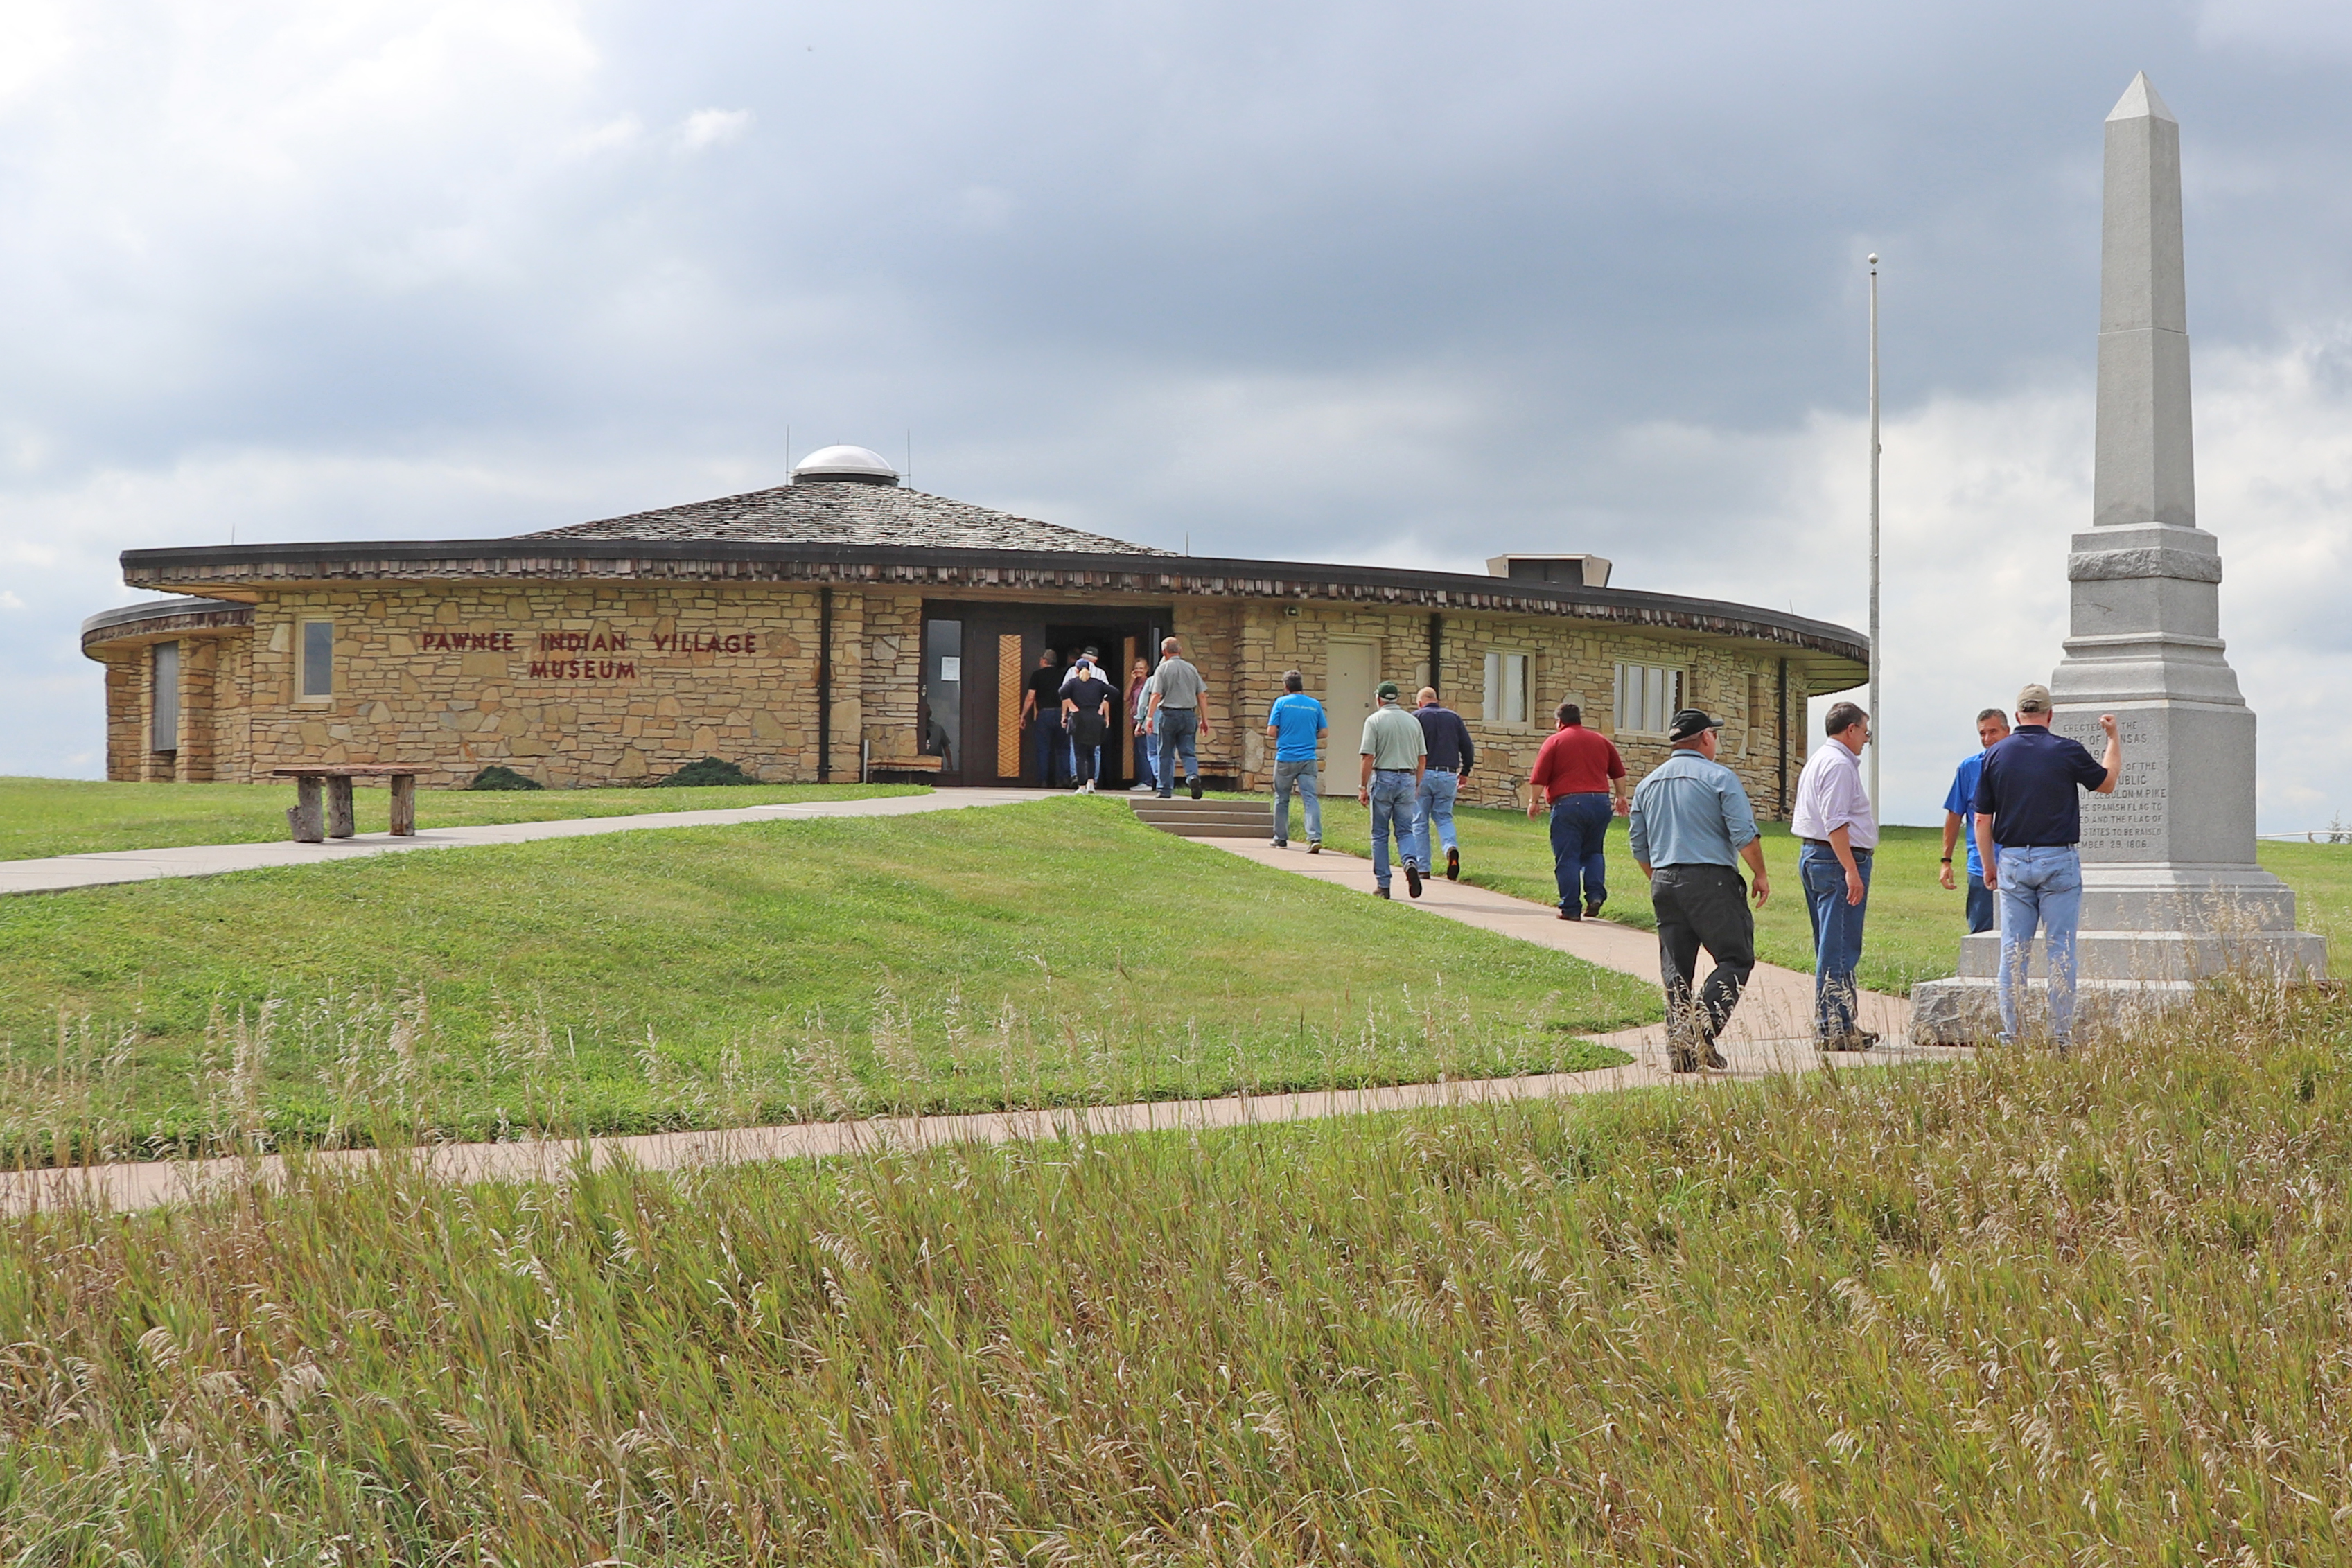 Pawnee Indian Museum State Historic Site.